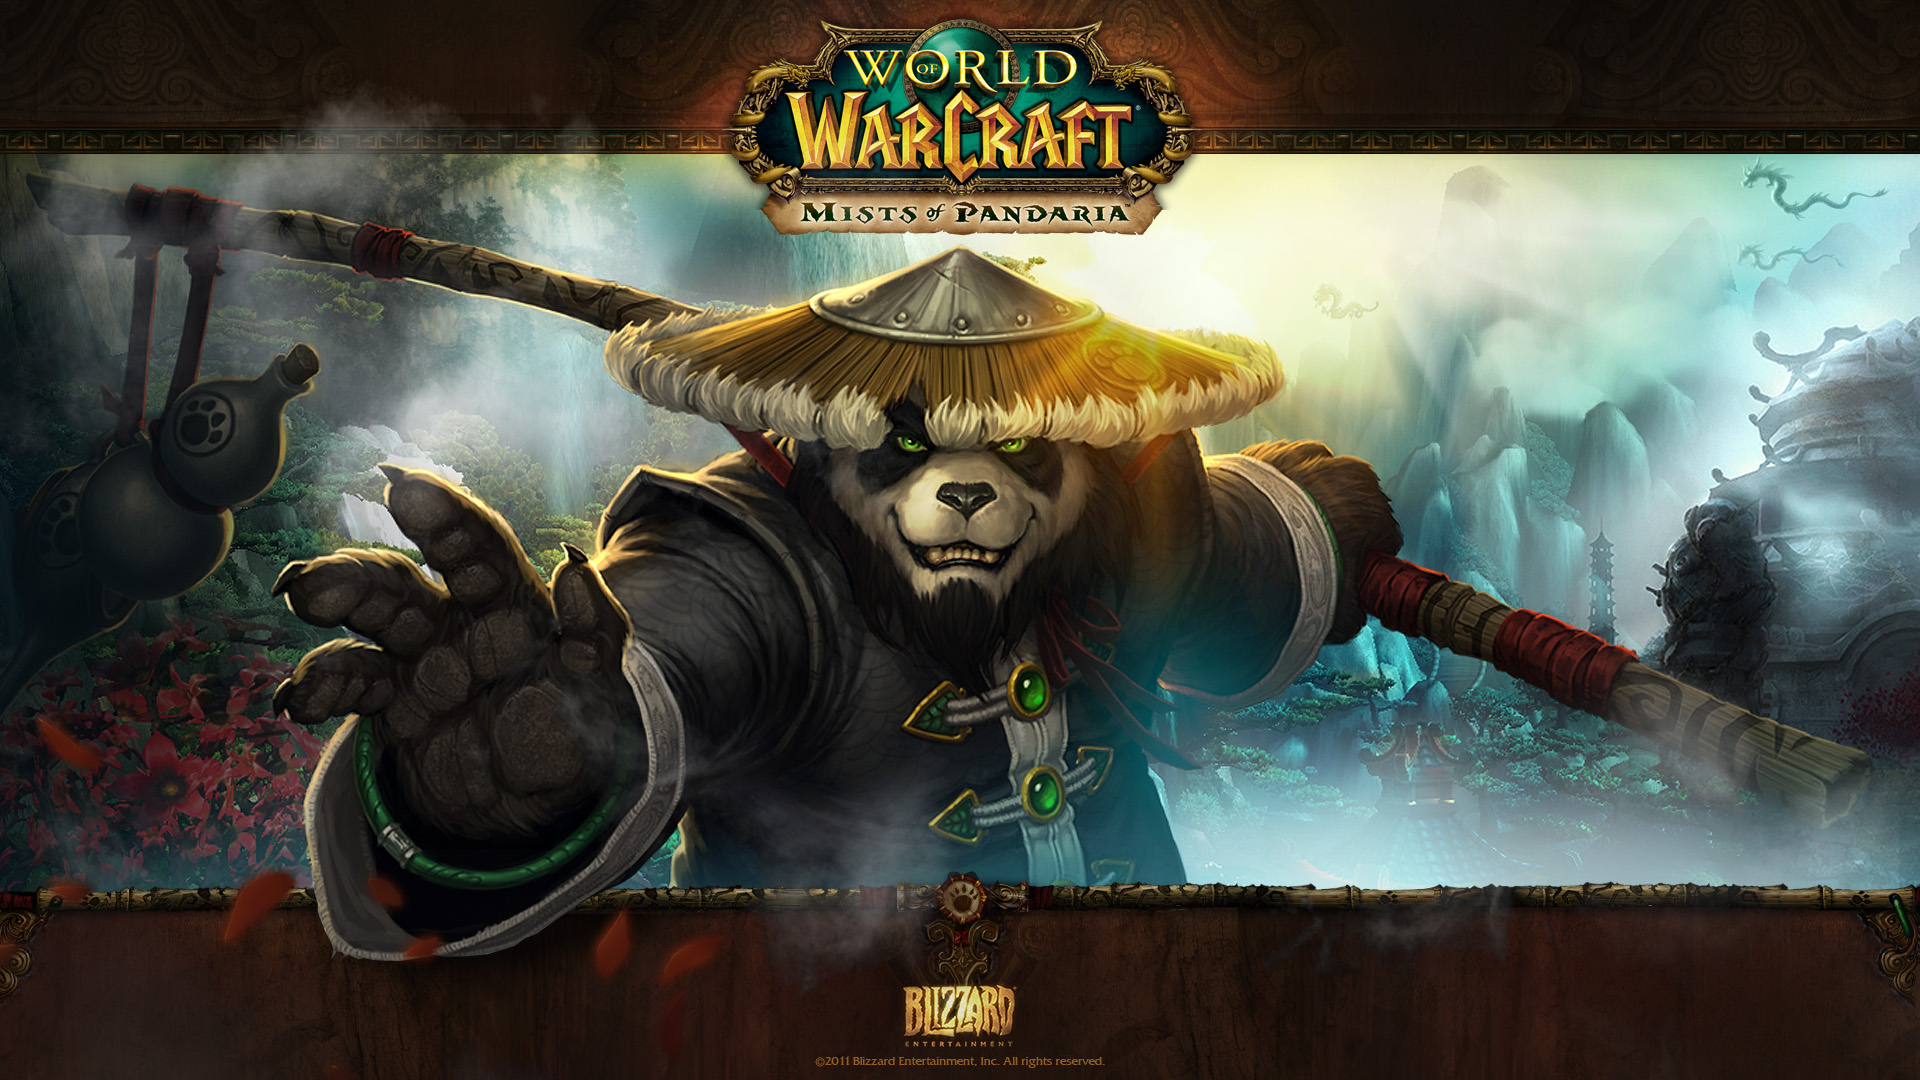 World Of Warcraft Mists Of Pandaria Wallpaper Hd